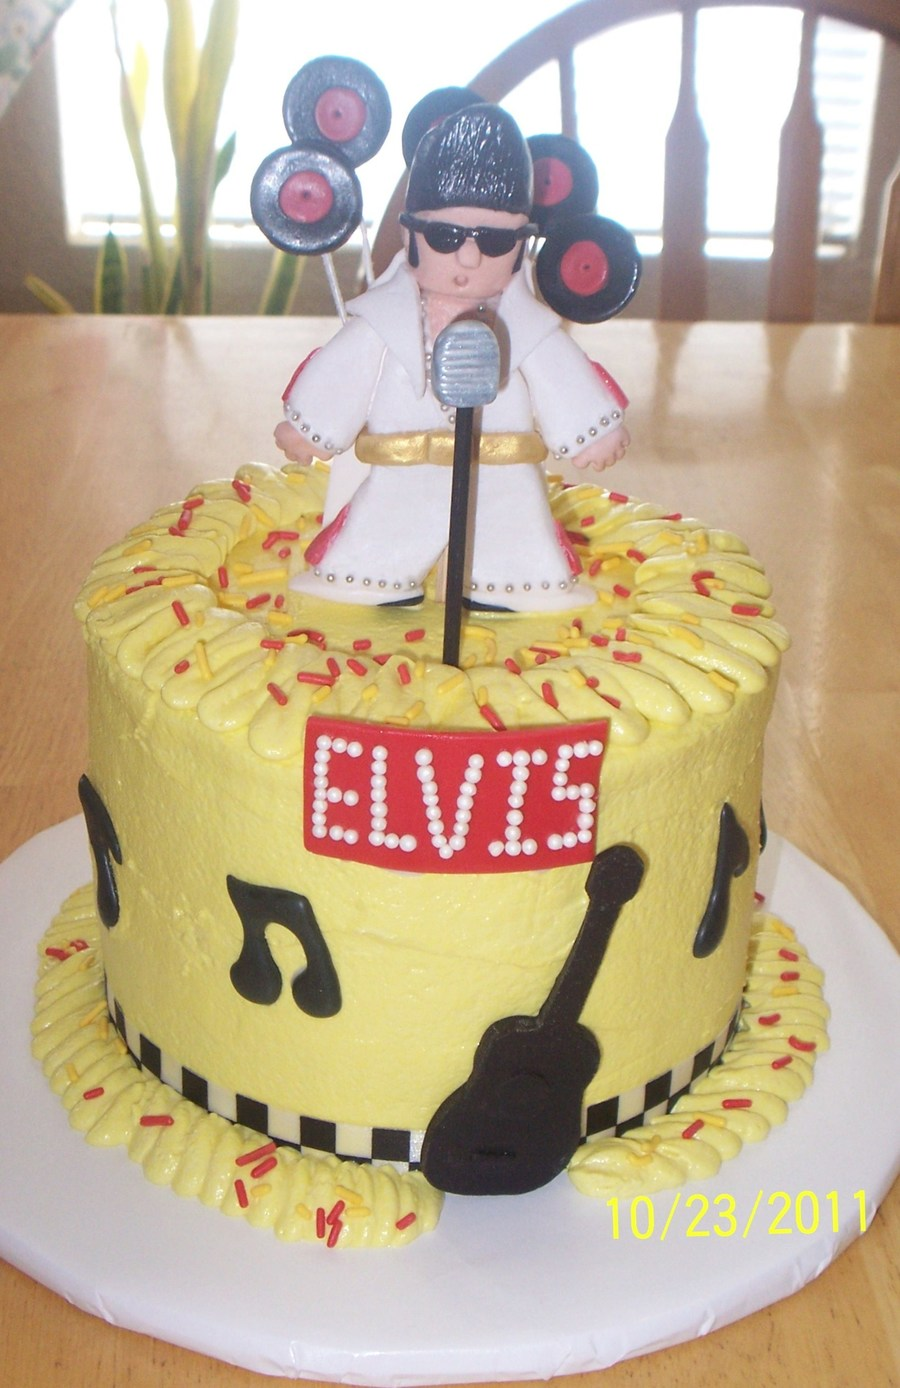 Elvis Sings Kentucky Rain In The Ghetto on Cake Central